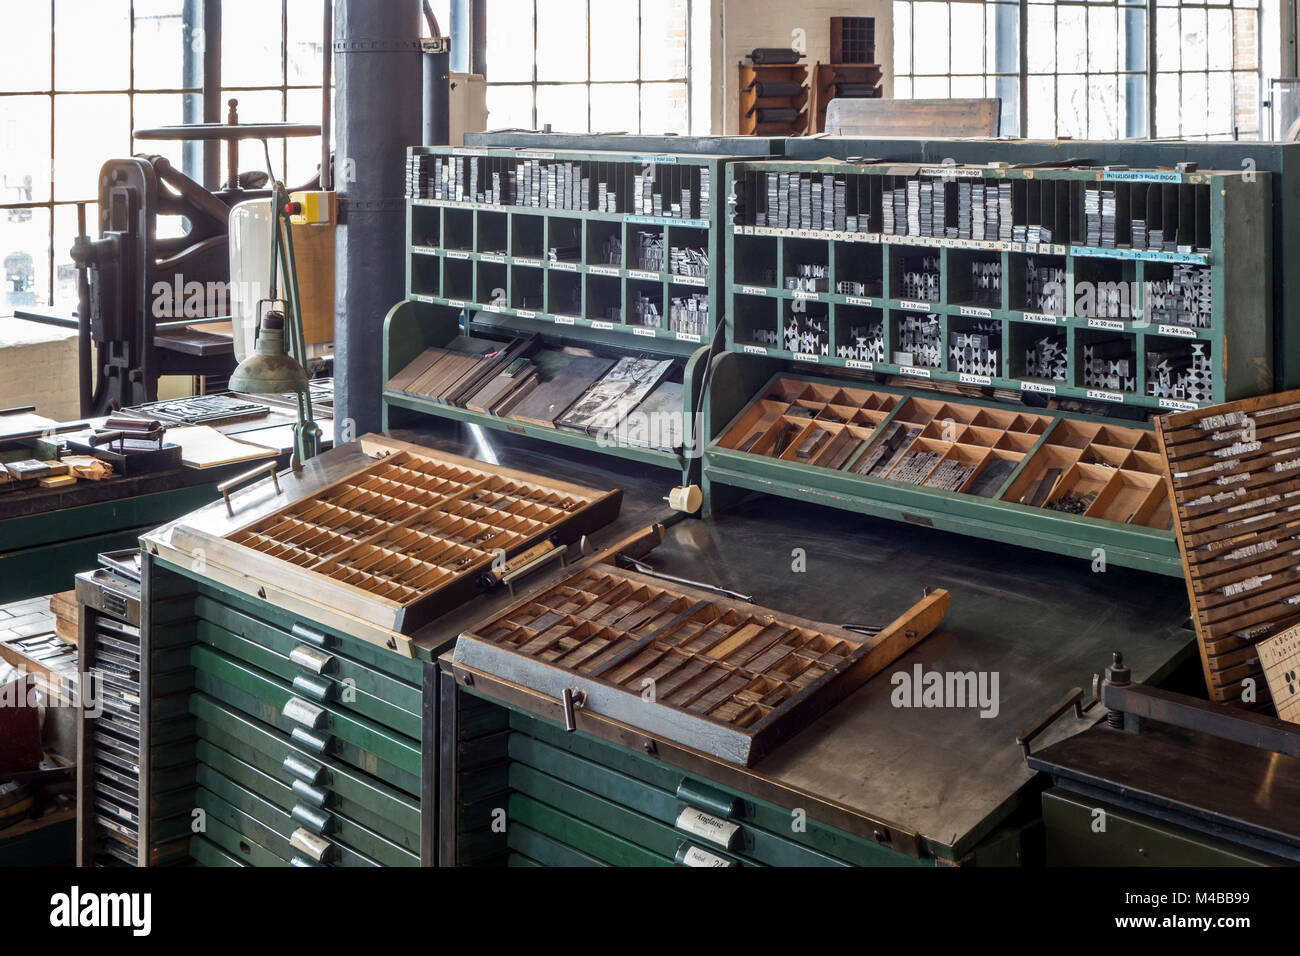 Type case in composing room at printing business, technology for mechanical typesetting text in letterpress printing - Stock Image